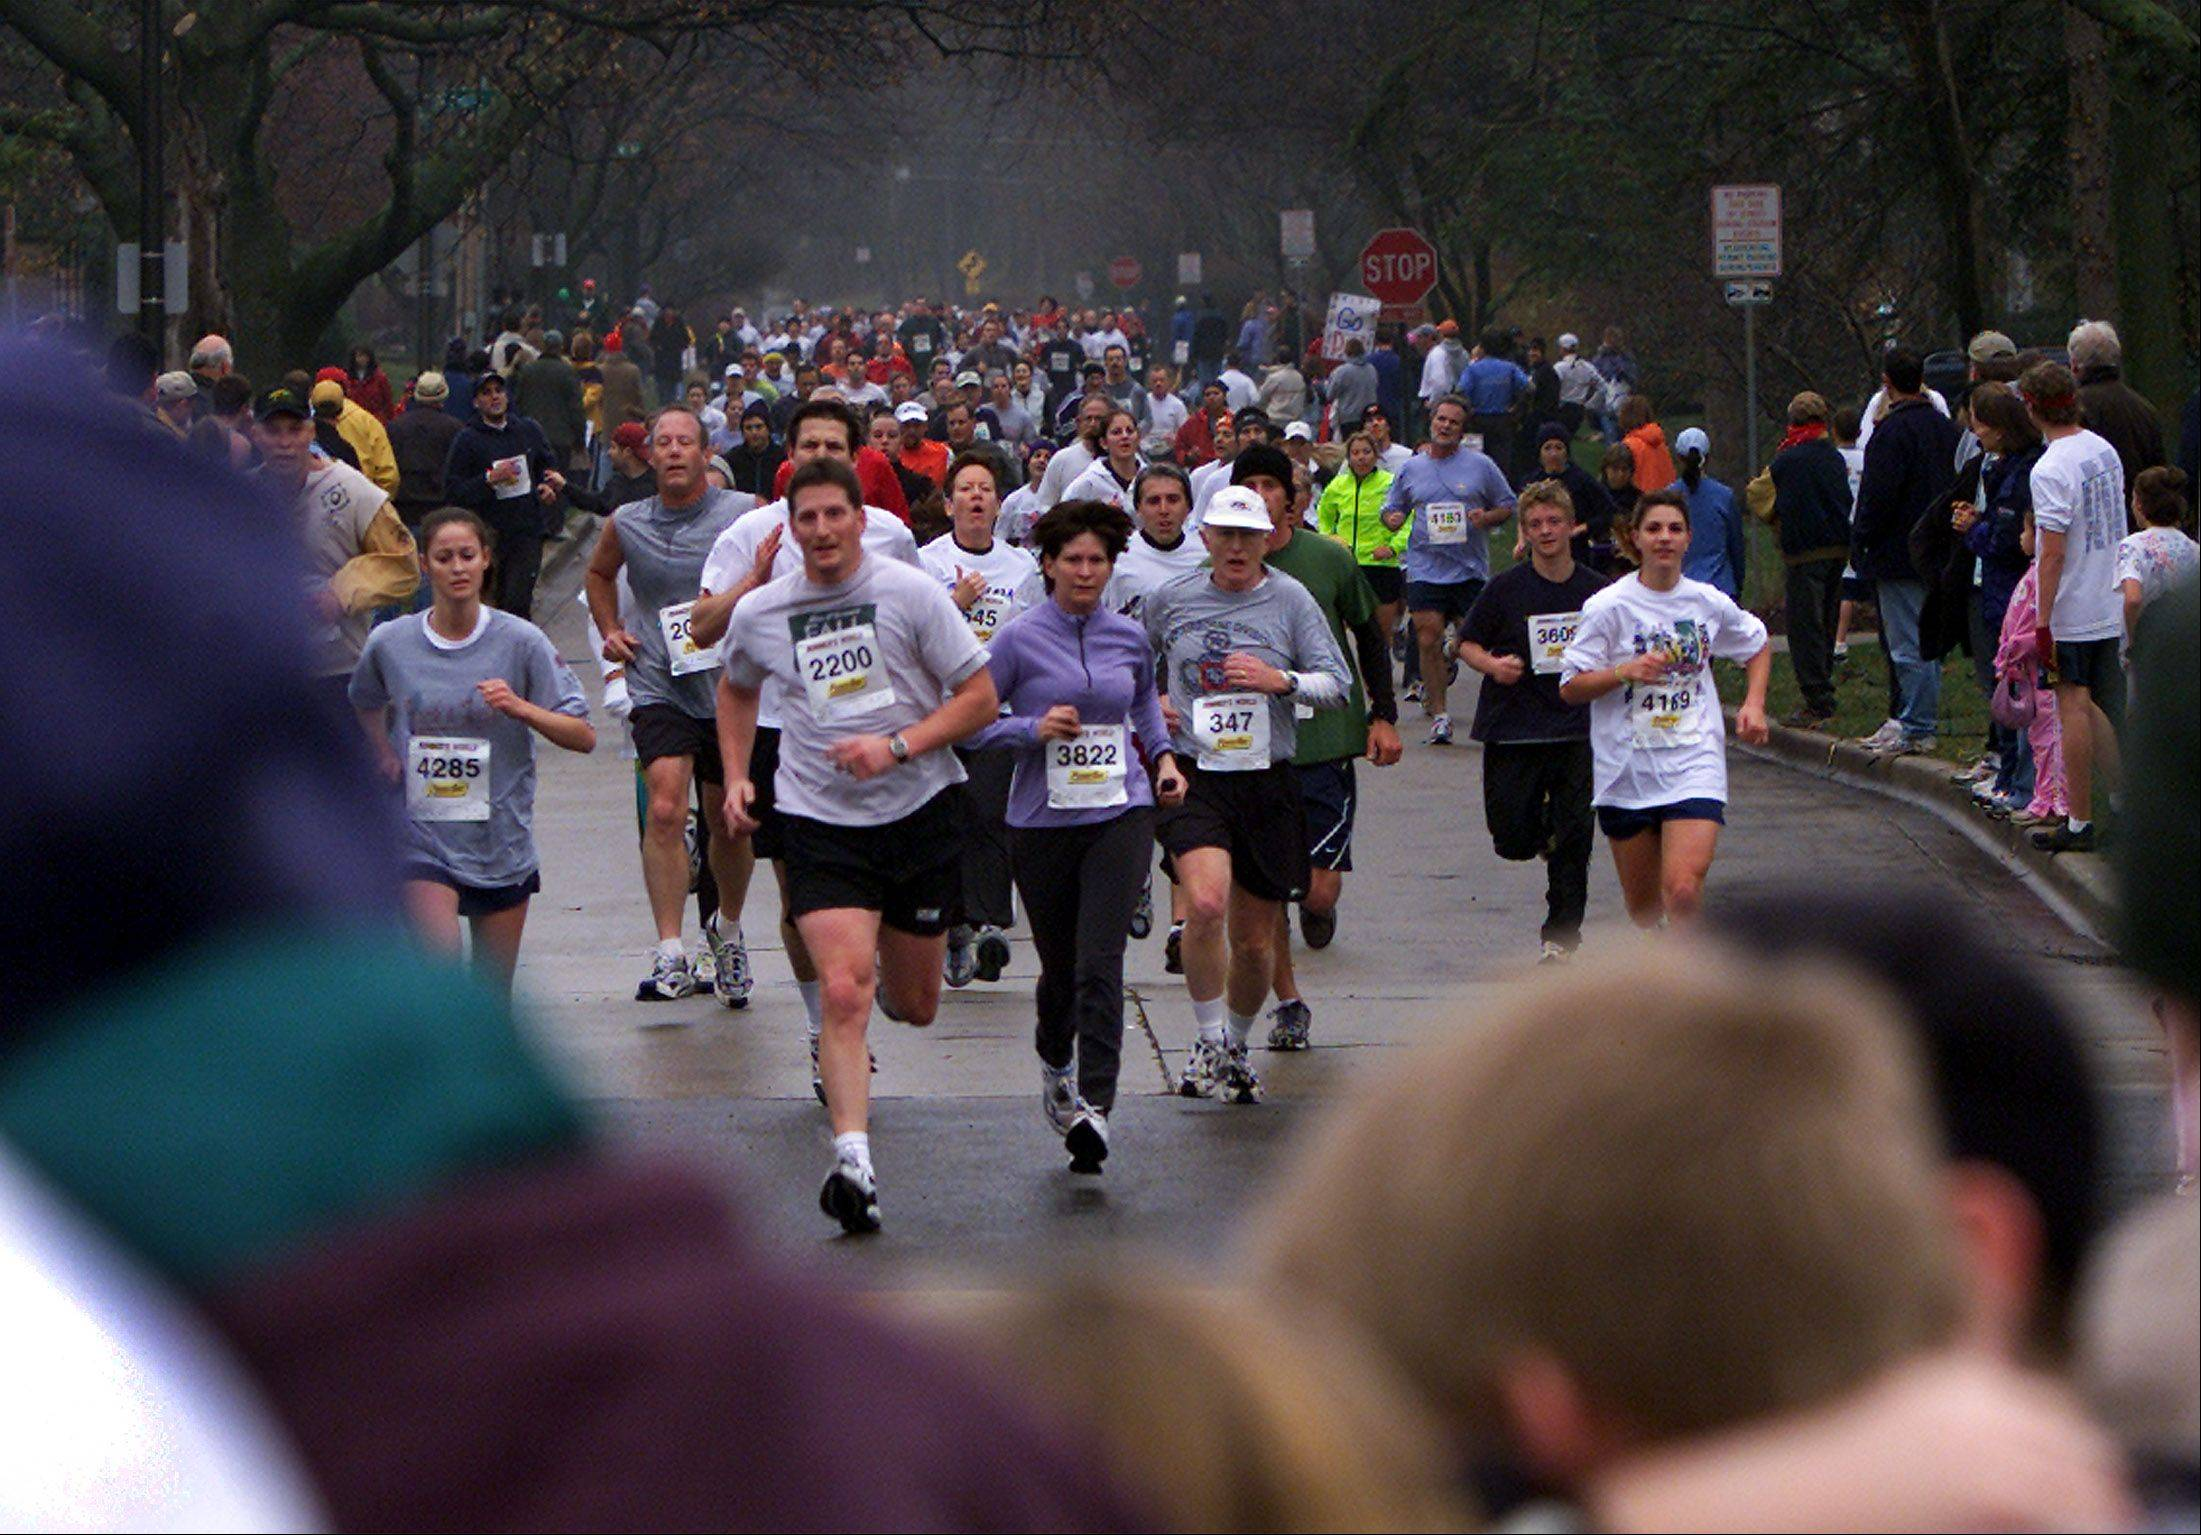 Roughly 7,700 turkey trotters will head toward the finish line at Naperville Central High School on Thursday morning in the 16th annual Naperville Noon Lions Turkey Trot 5K.